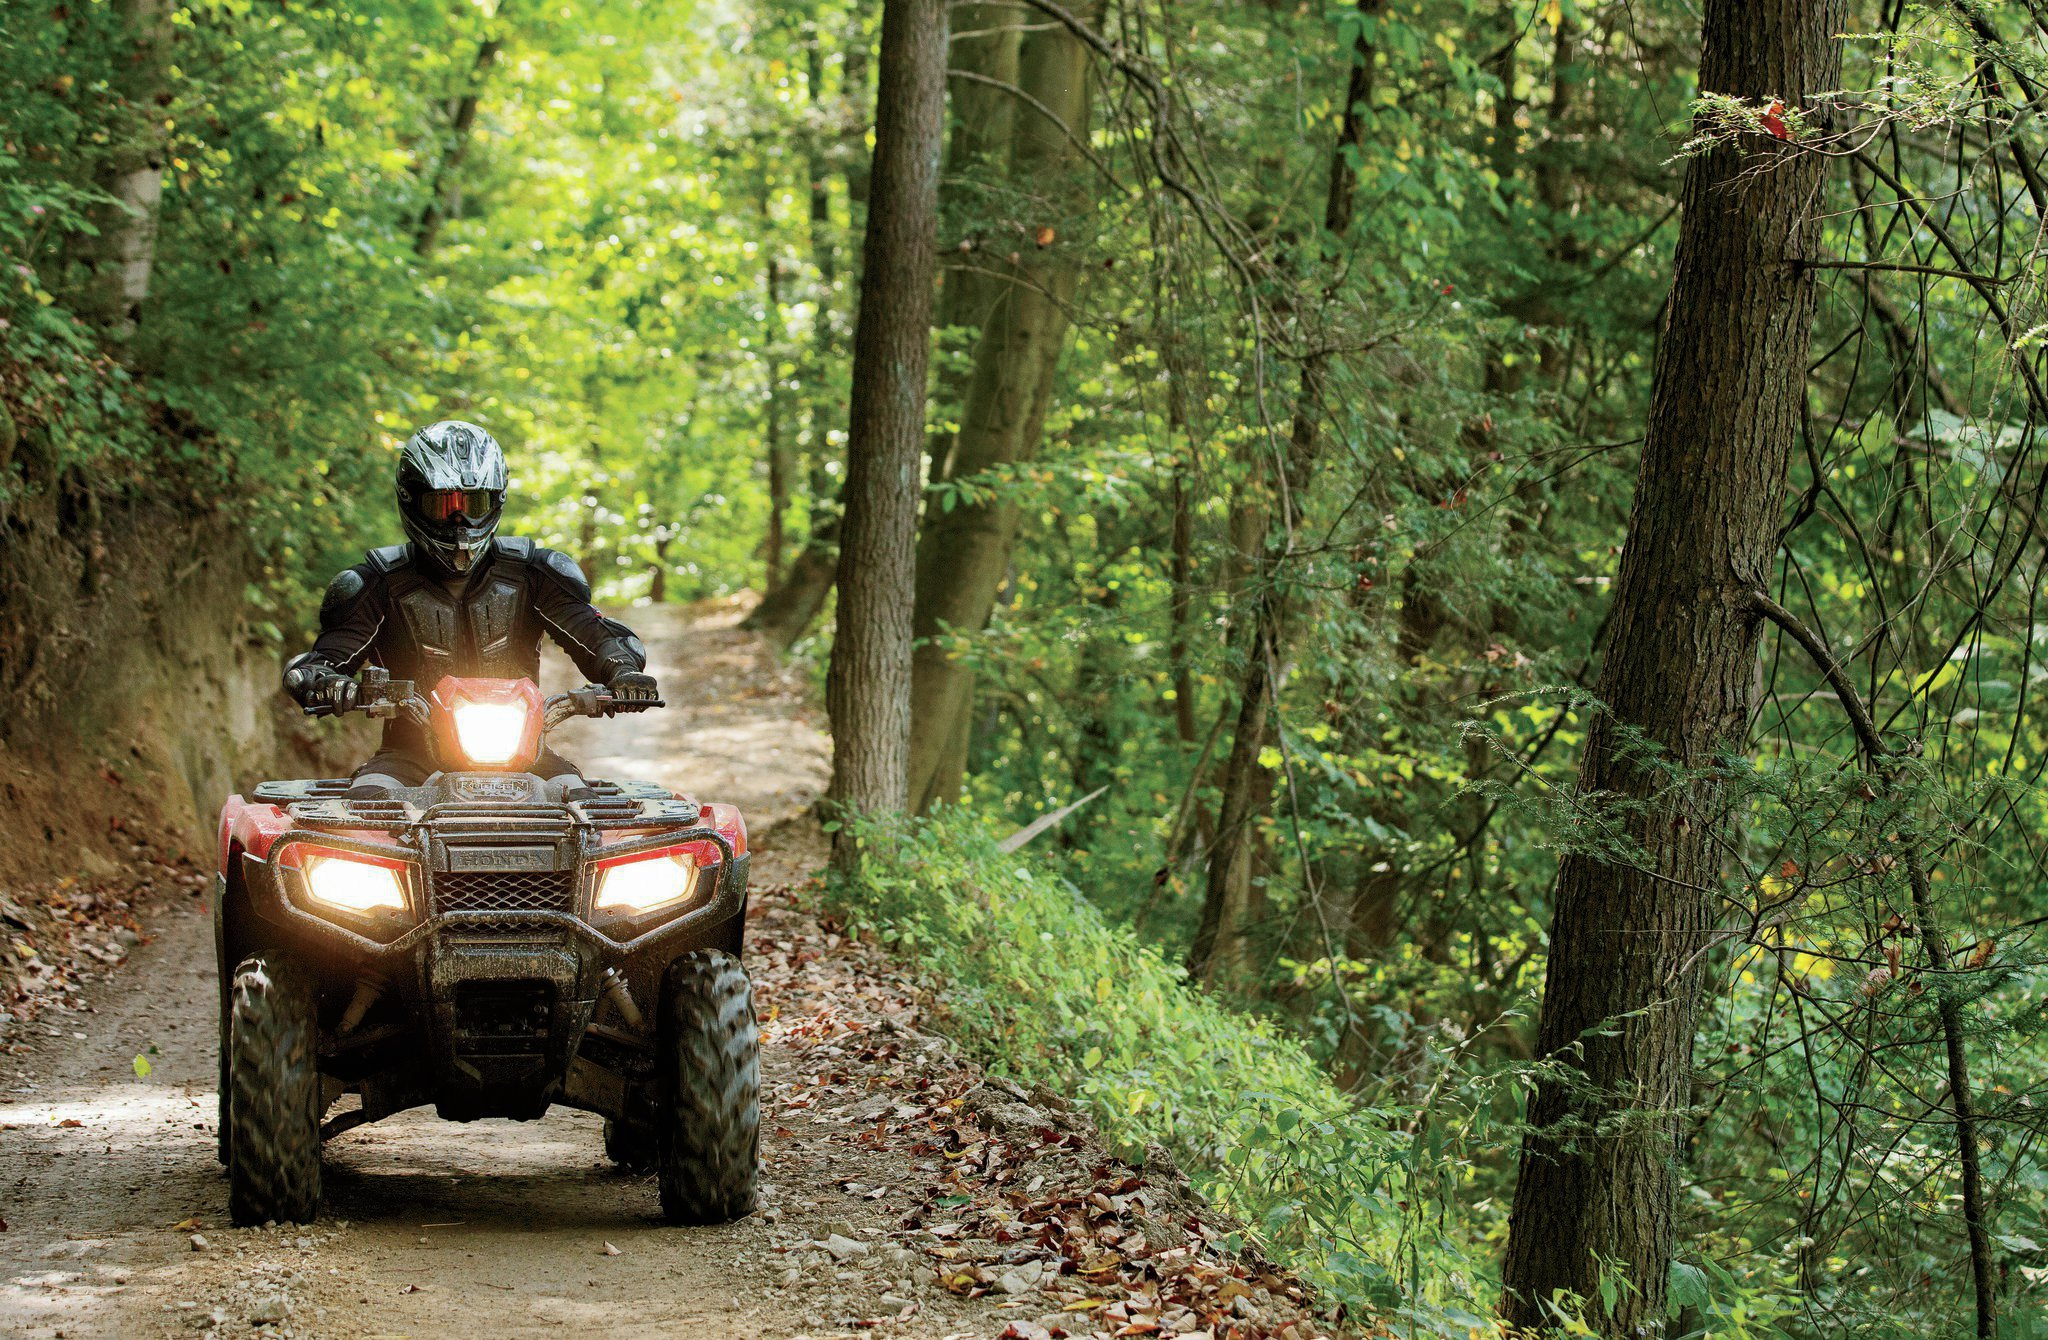 The award-winning Hatfield-McCoy Trails offer something for every skill level. Located in southern West Virginia, there are over 700 miles to explore, including the Ivy Branch—the first 4WD vehicle trail to open in the Mid-Atlantic region.